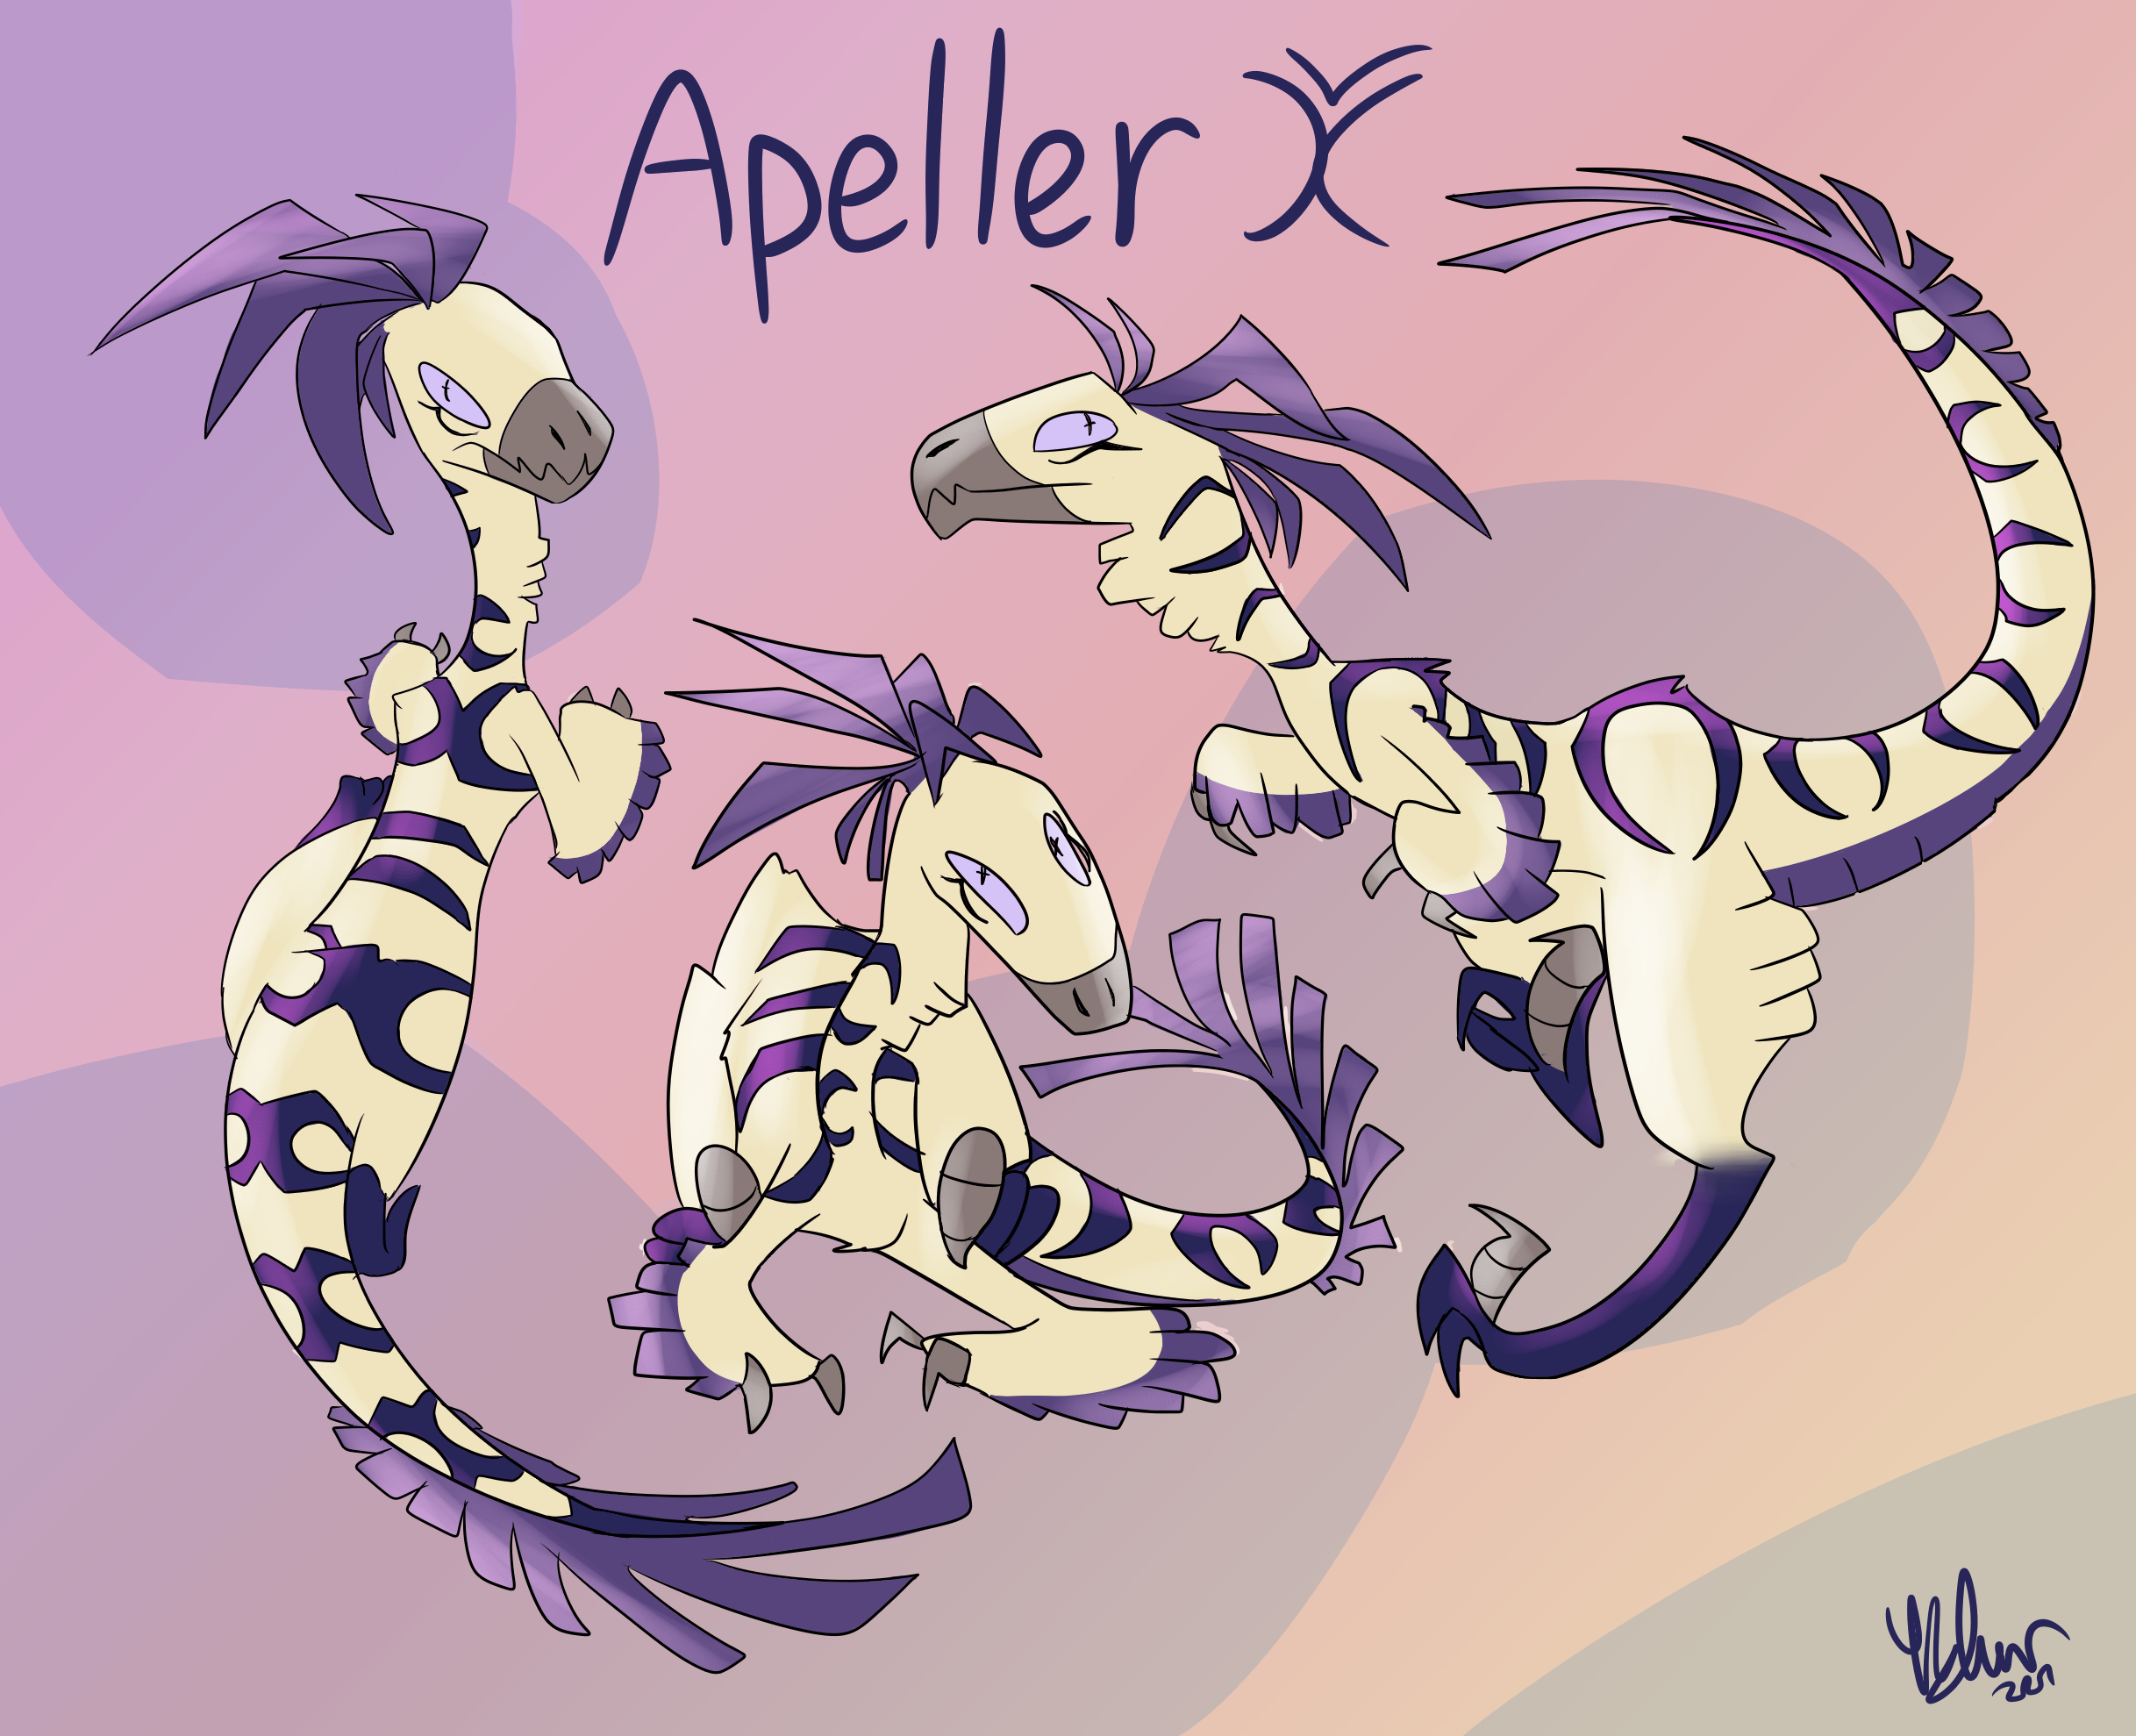 apeller raptor oc by torteraex on deviantart apeller raptor oc by torteraex on